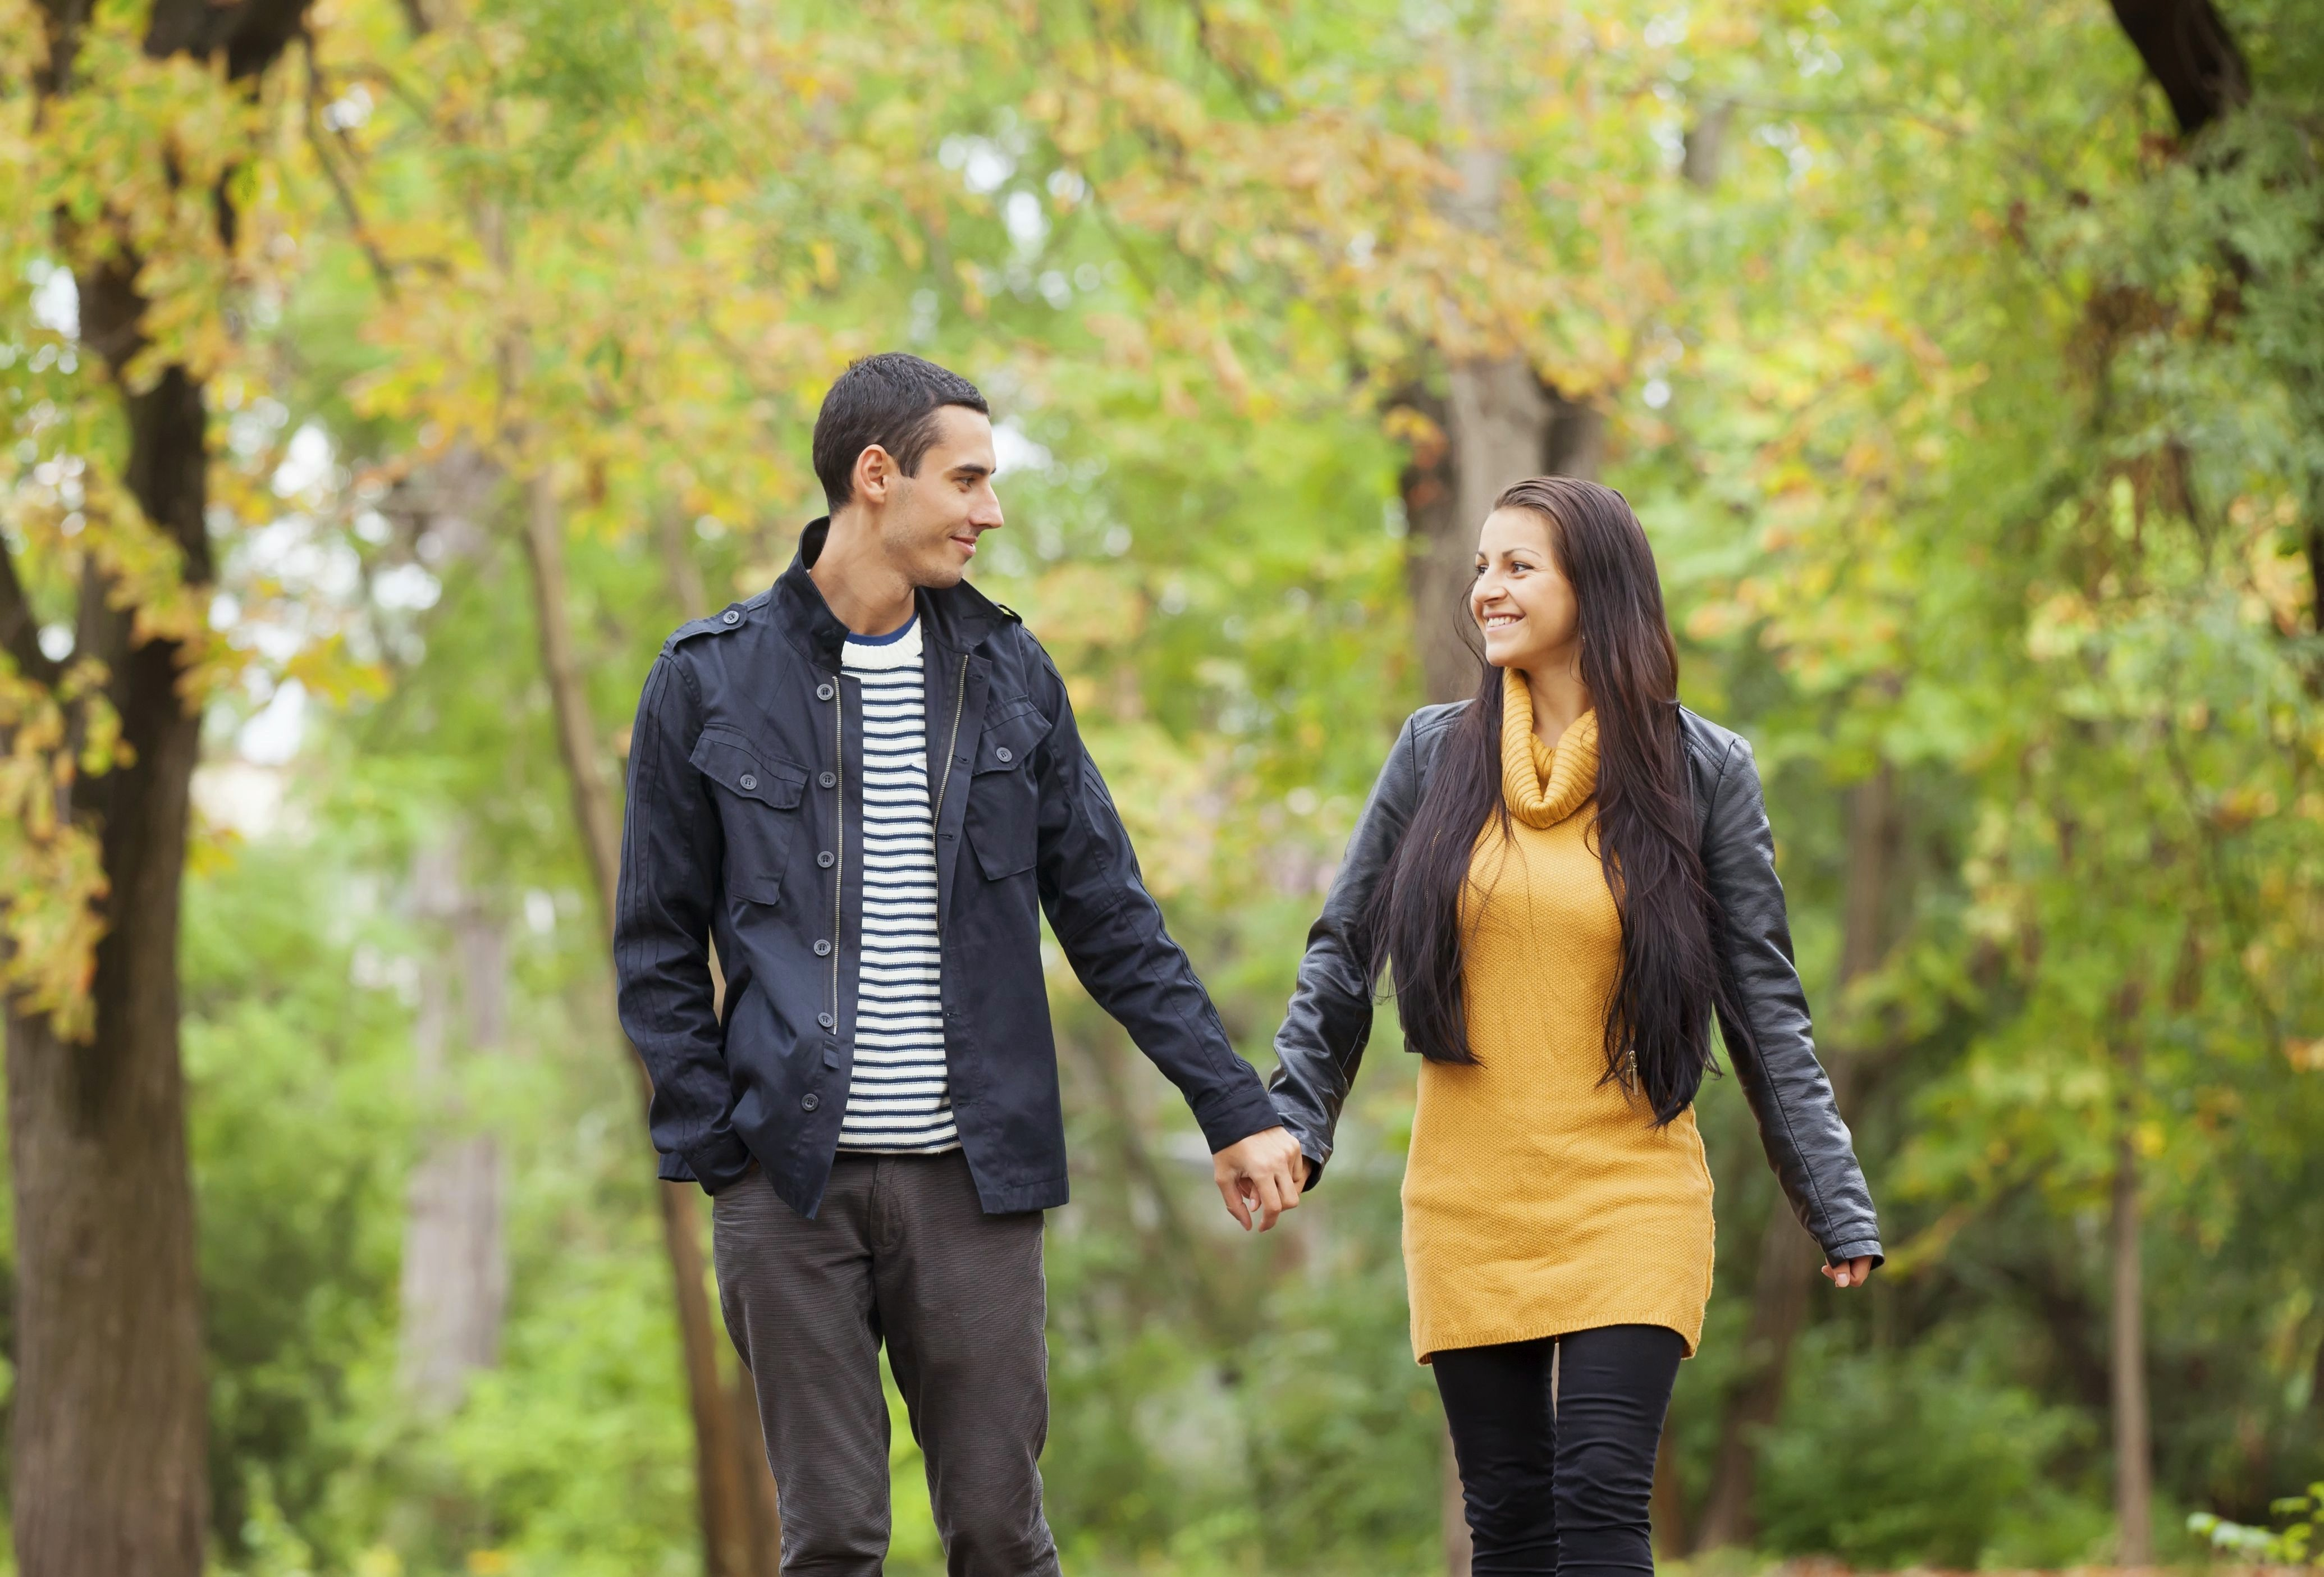 The seven principles program for couples families in for Activities for couples in nyc